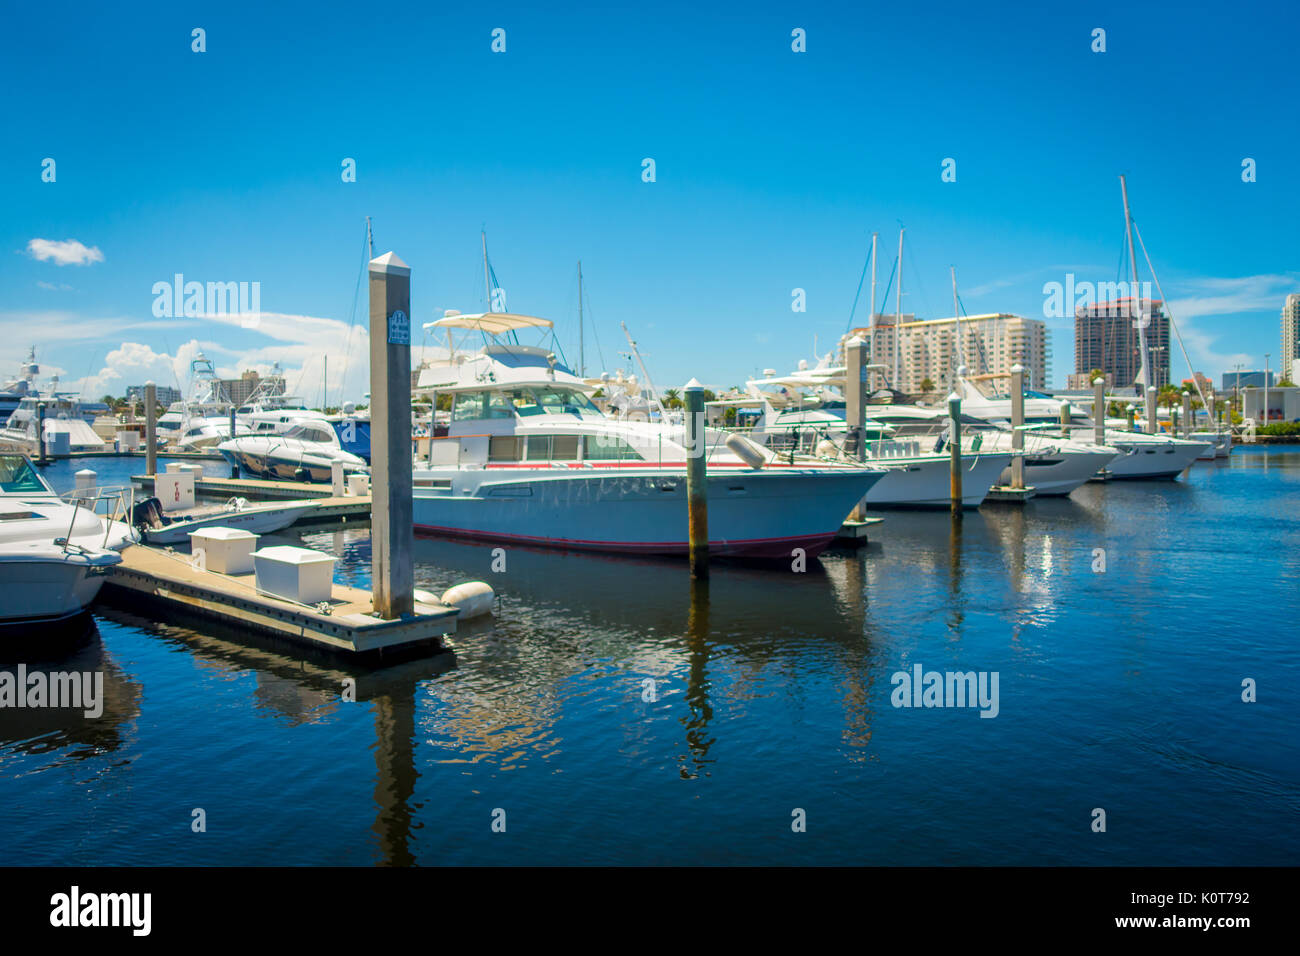 FORT LAUDERDALE, USA - JULY 11, 2017: A line of boats displayed for sale at the Fort Lauderdale International Boat Stock Photo